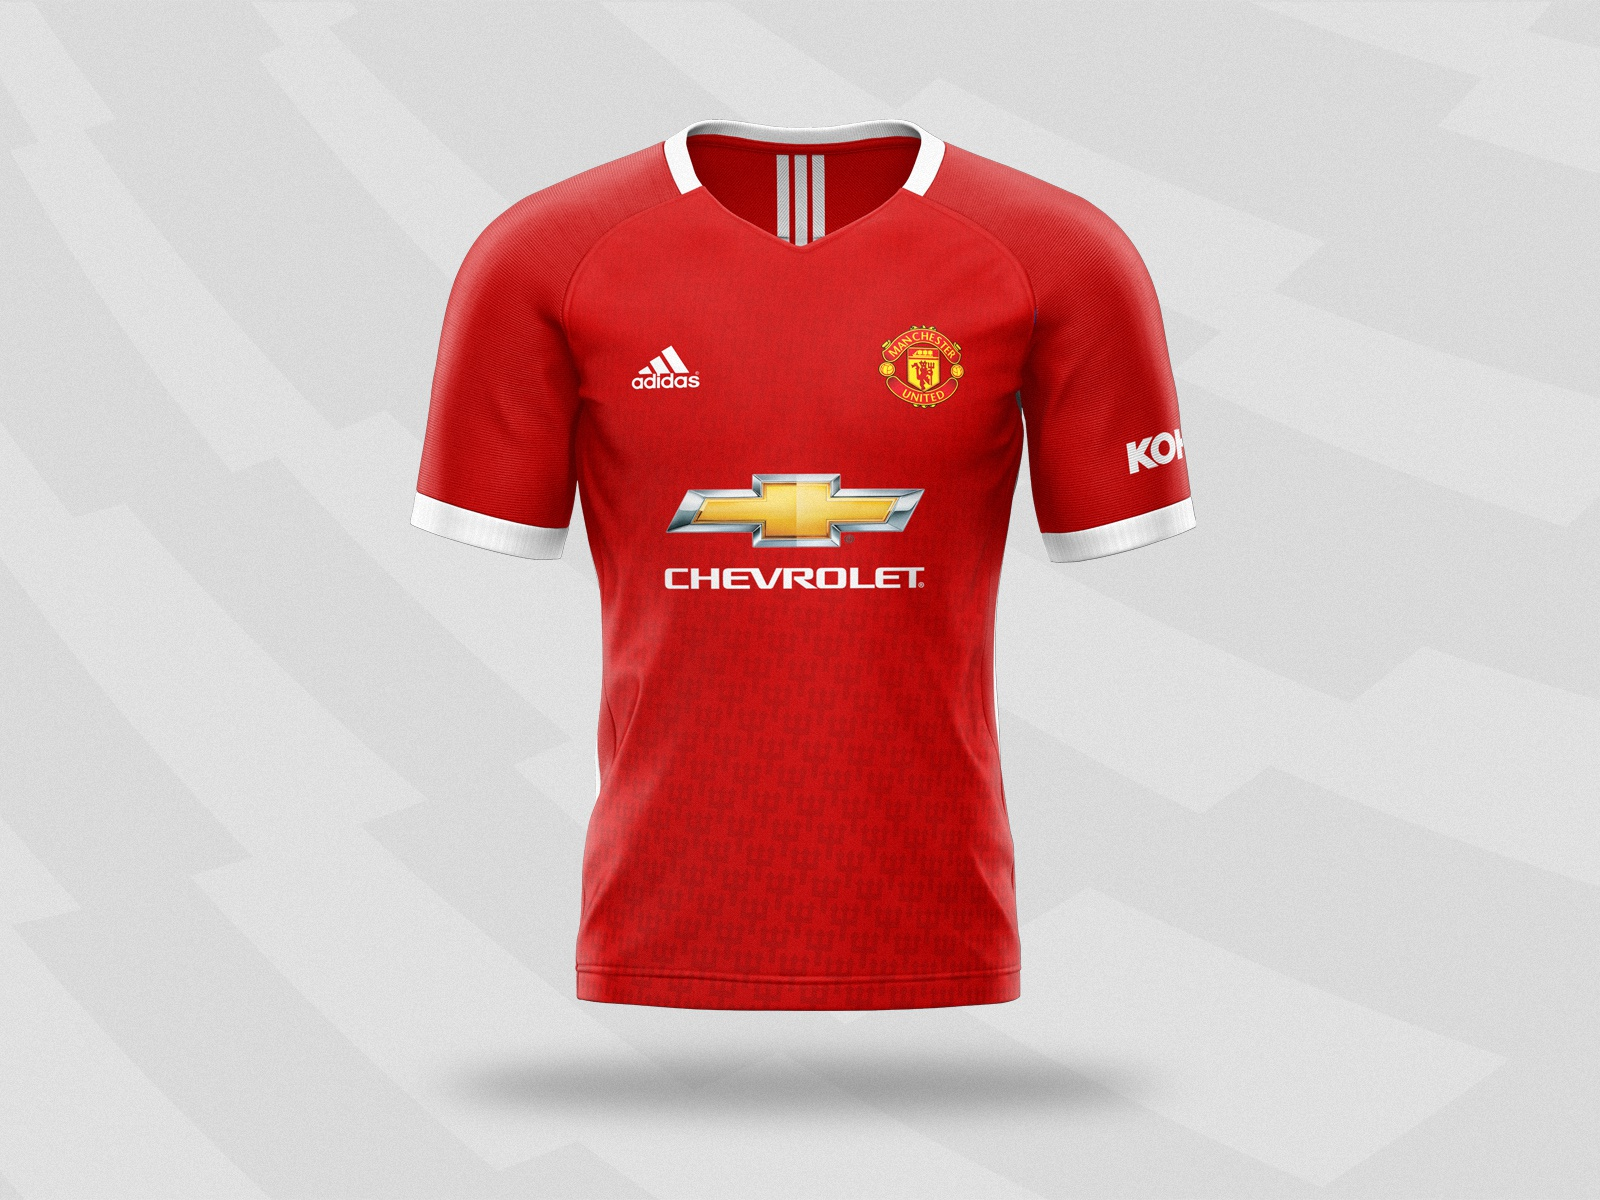 manchester united 2020 21 home kit concept design by maciej zielinski on dribbble manchester united 2020 21 home kit